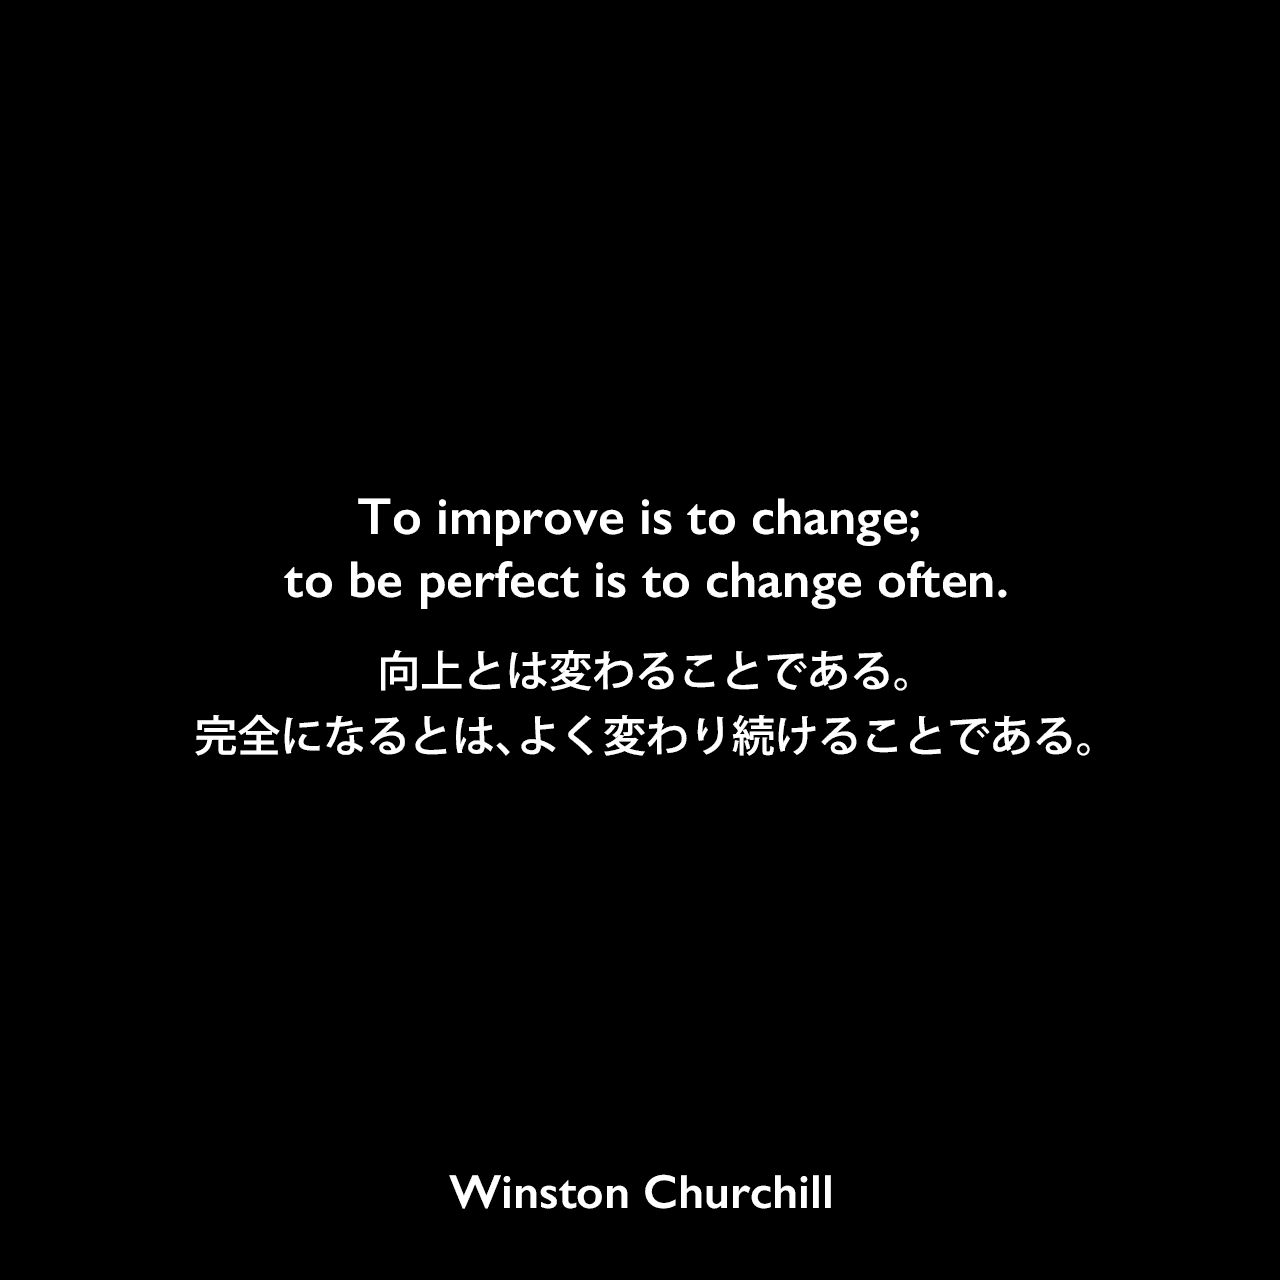 To improve is to change; to be perfect is to change often.向上とは変わることである。完全になるとは、よく変わり続けることである。Winston Churchill